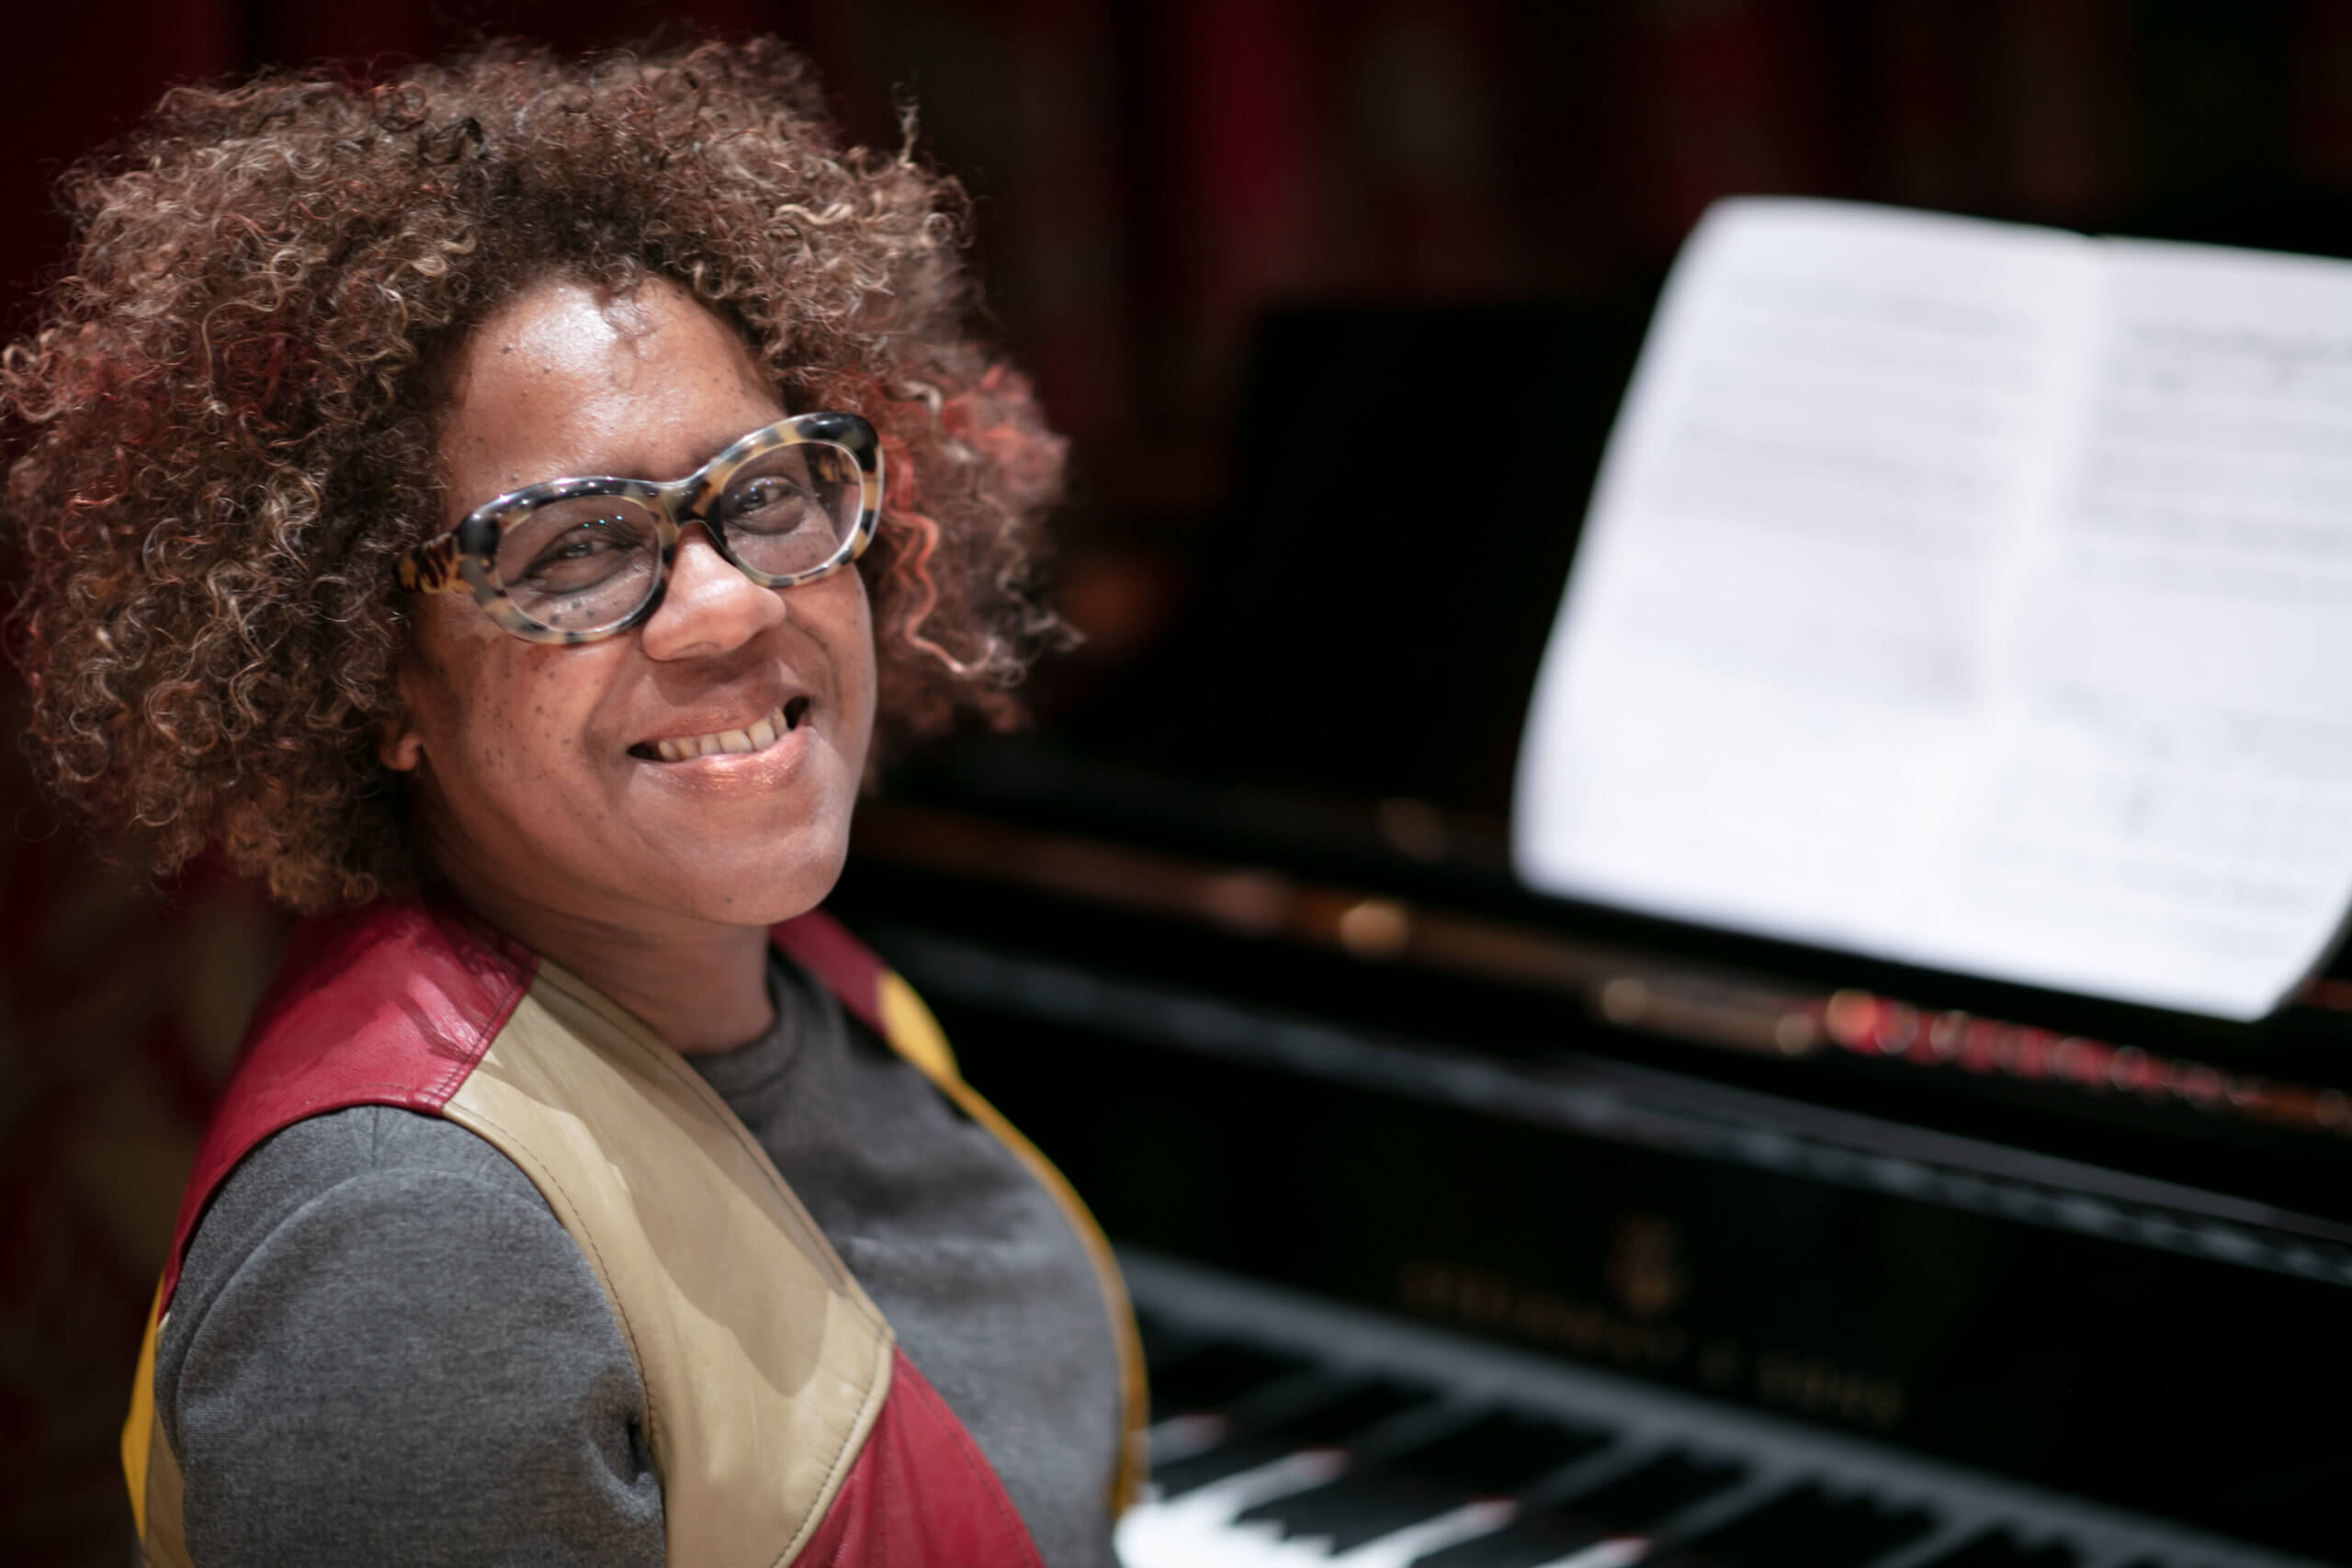 Errollyn Wallen CBE, Visiting Professor in Composition at the Royal Conservatoire of Scotland. Errollyn is pictured at a piano in the Stevenson Hall concert venue